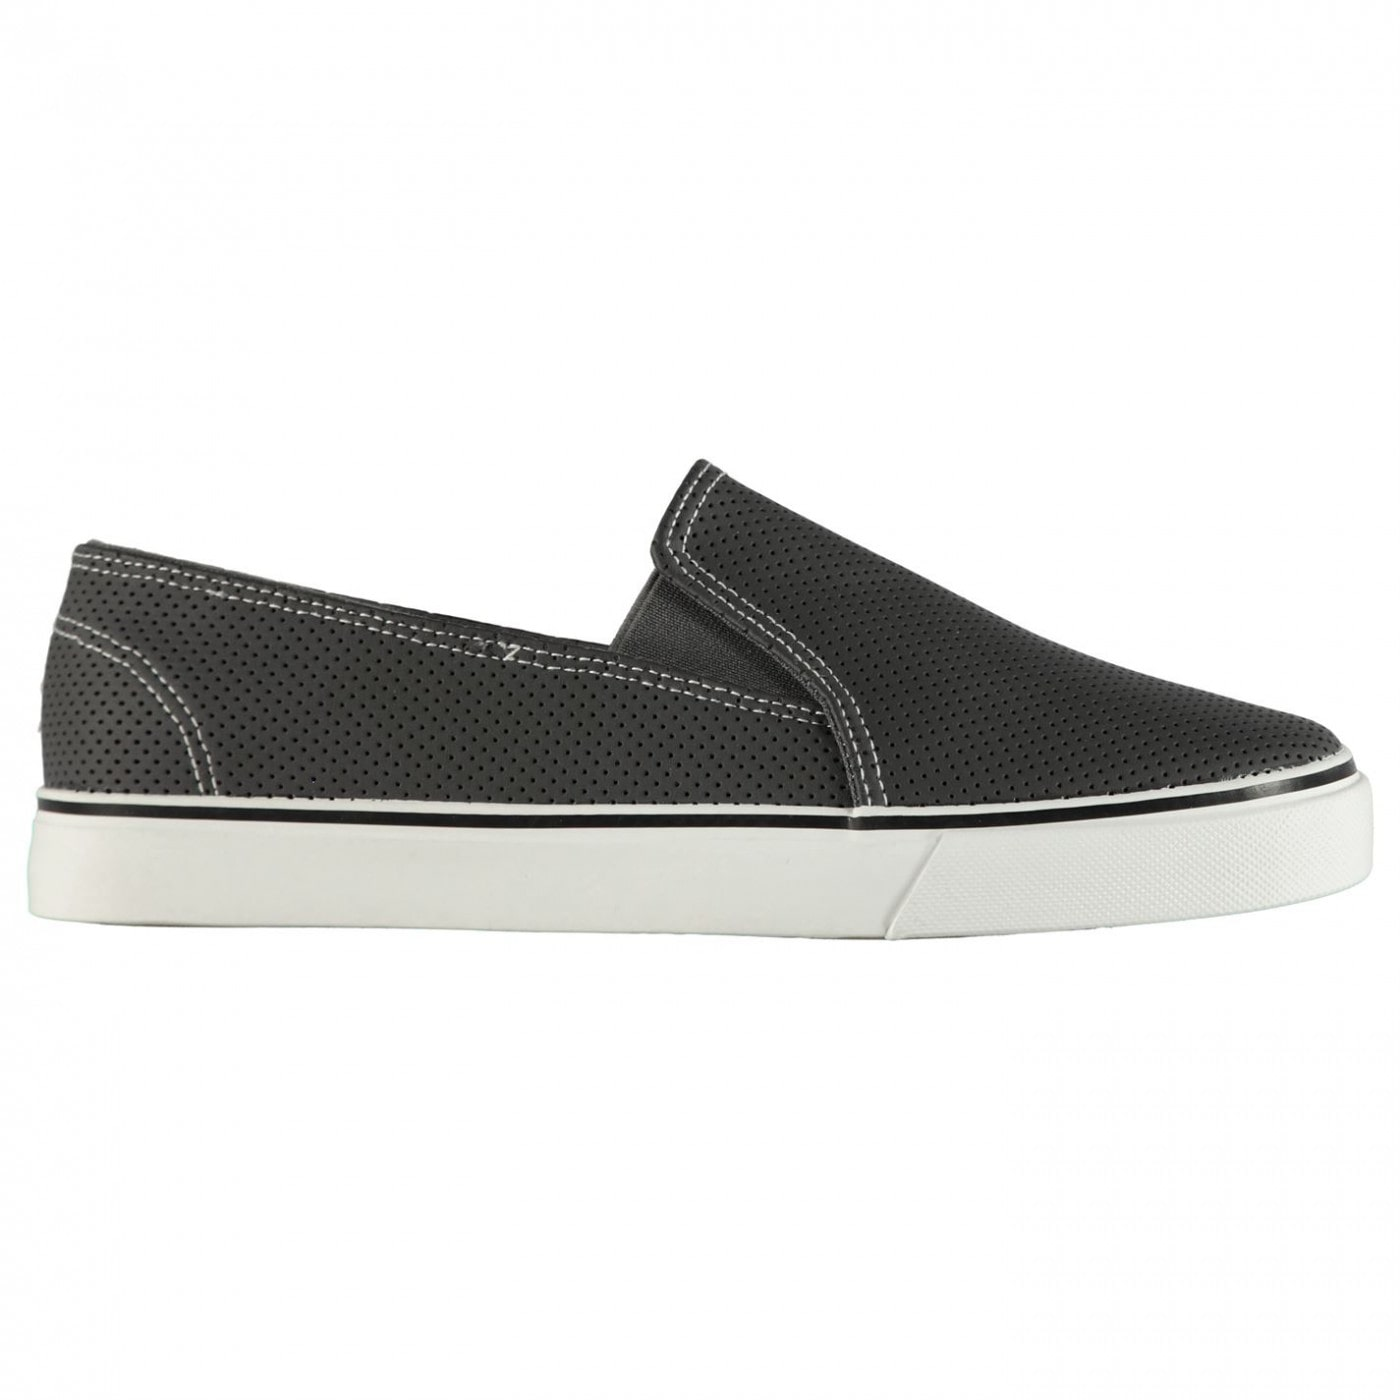 Men's shoes Lee Cooper Perforated